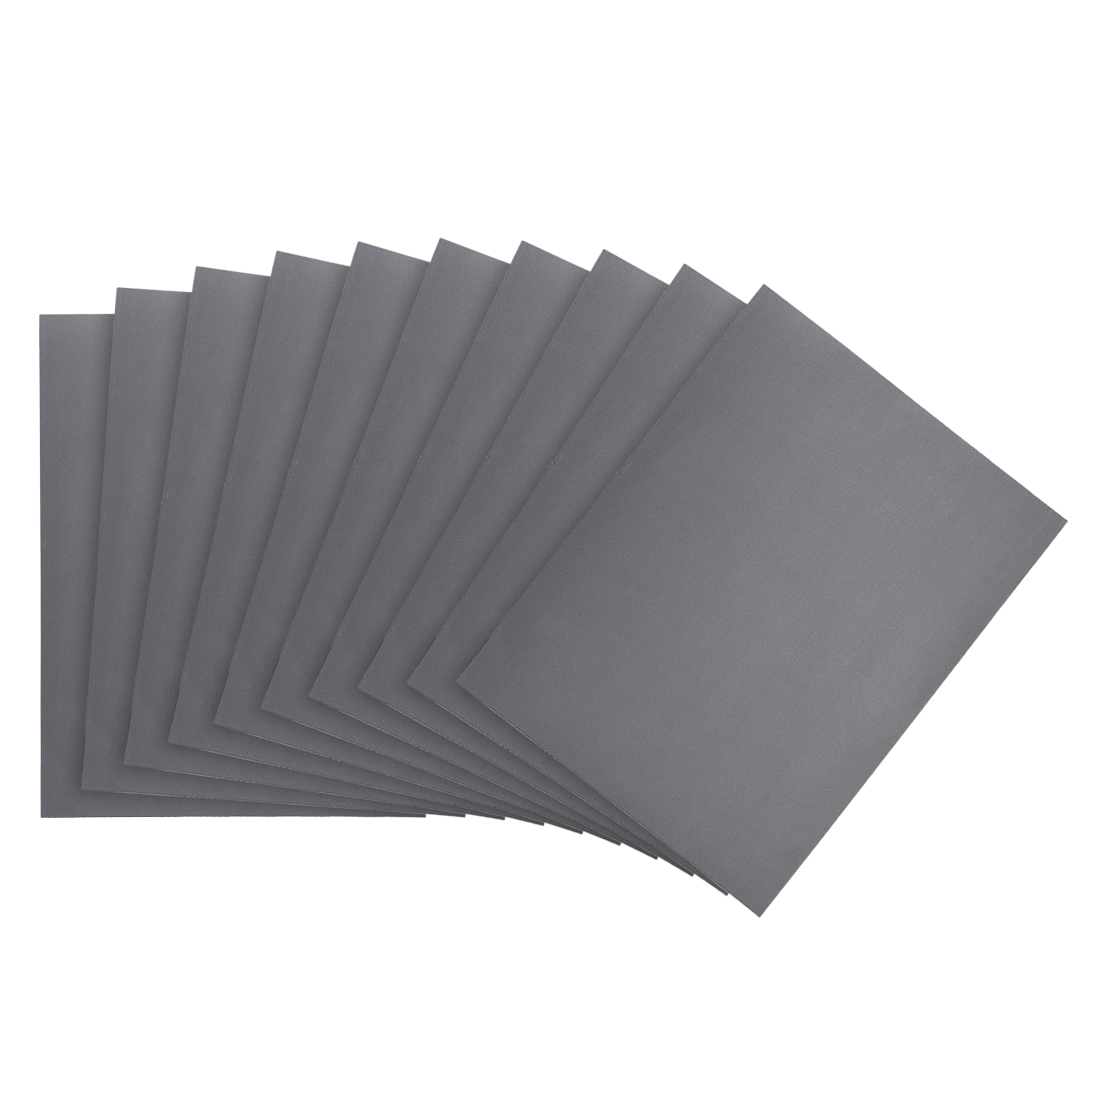 Waterproof Sandpaper, Wet Dry Sand Paper Grit of 1500, 11 x 9inch 10pcs